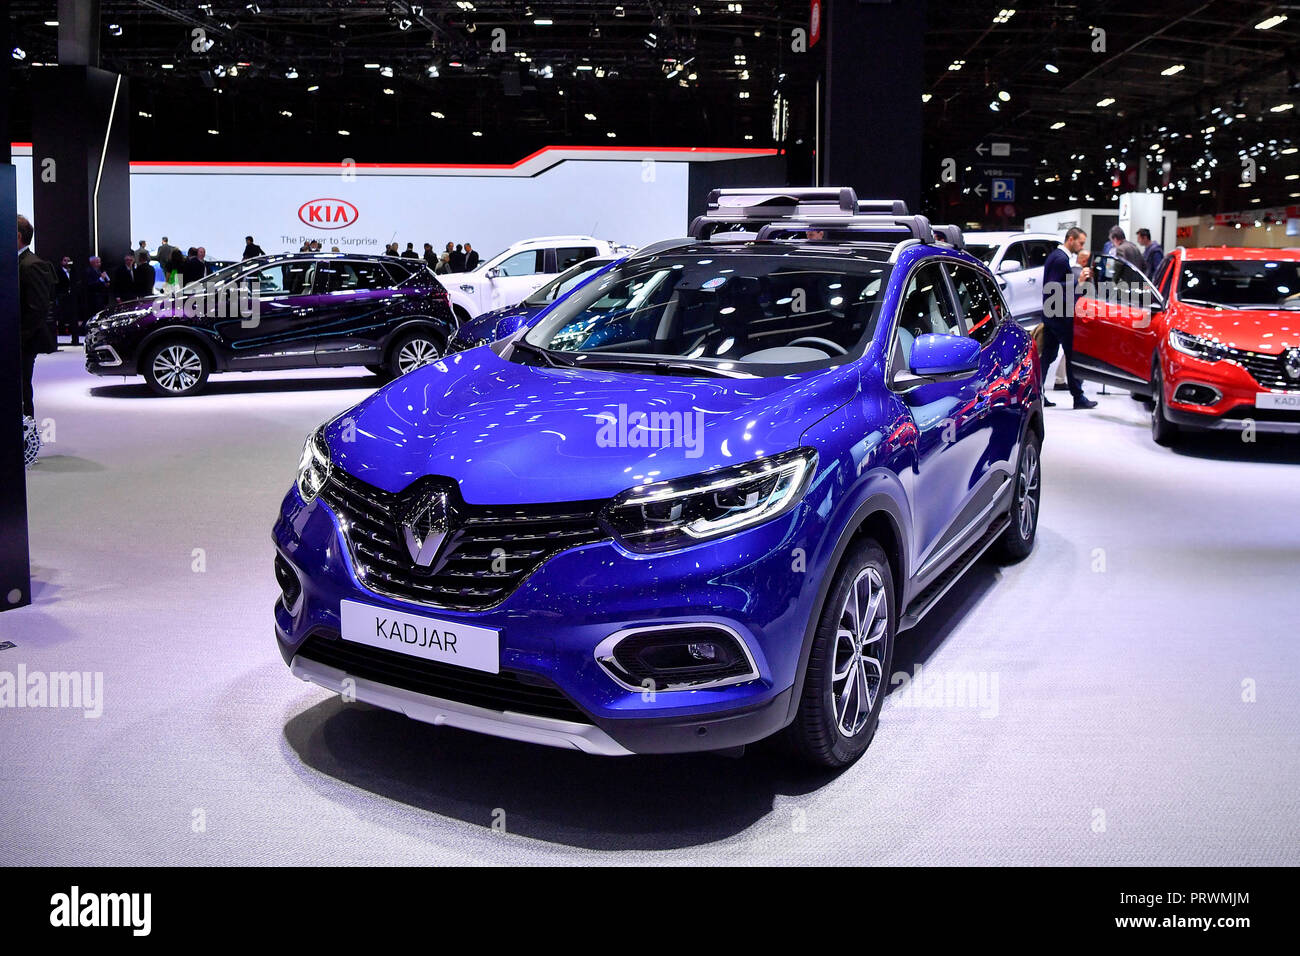 Paris. 3rd Oct, 2018. The newly released Renault's Kadjar is seen during the press day of Paris Motor Show in Paris, France on Oct. 3, 2018. Credit: Chen Yichen/Xinhua/Alamy Live News - Stock Image